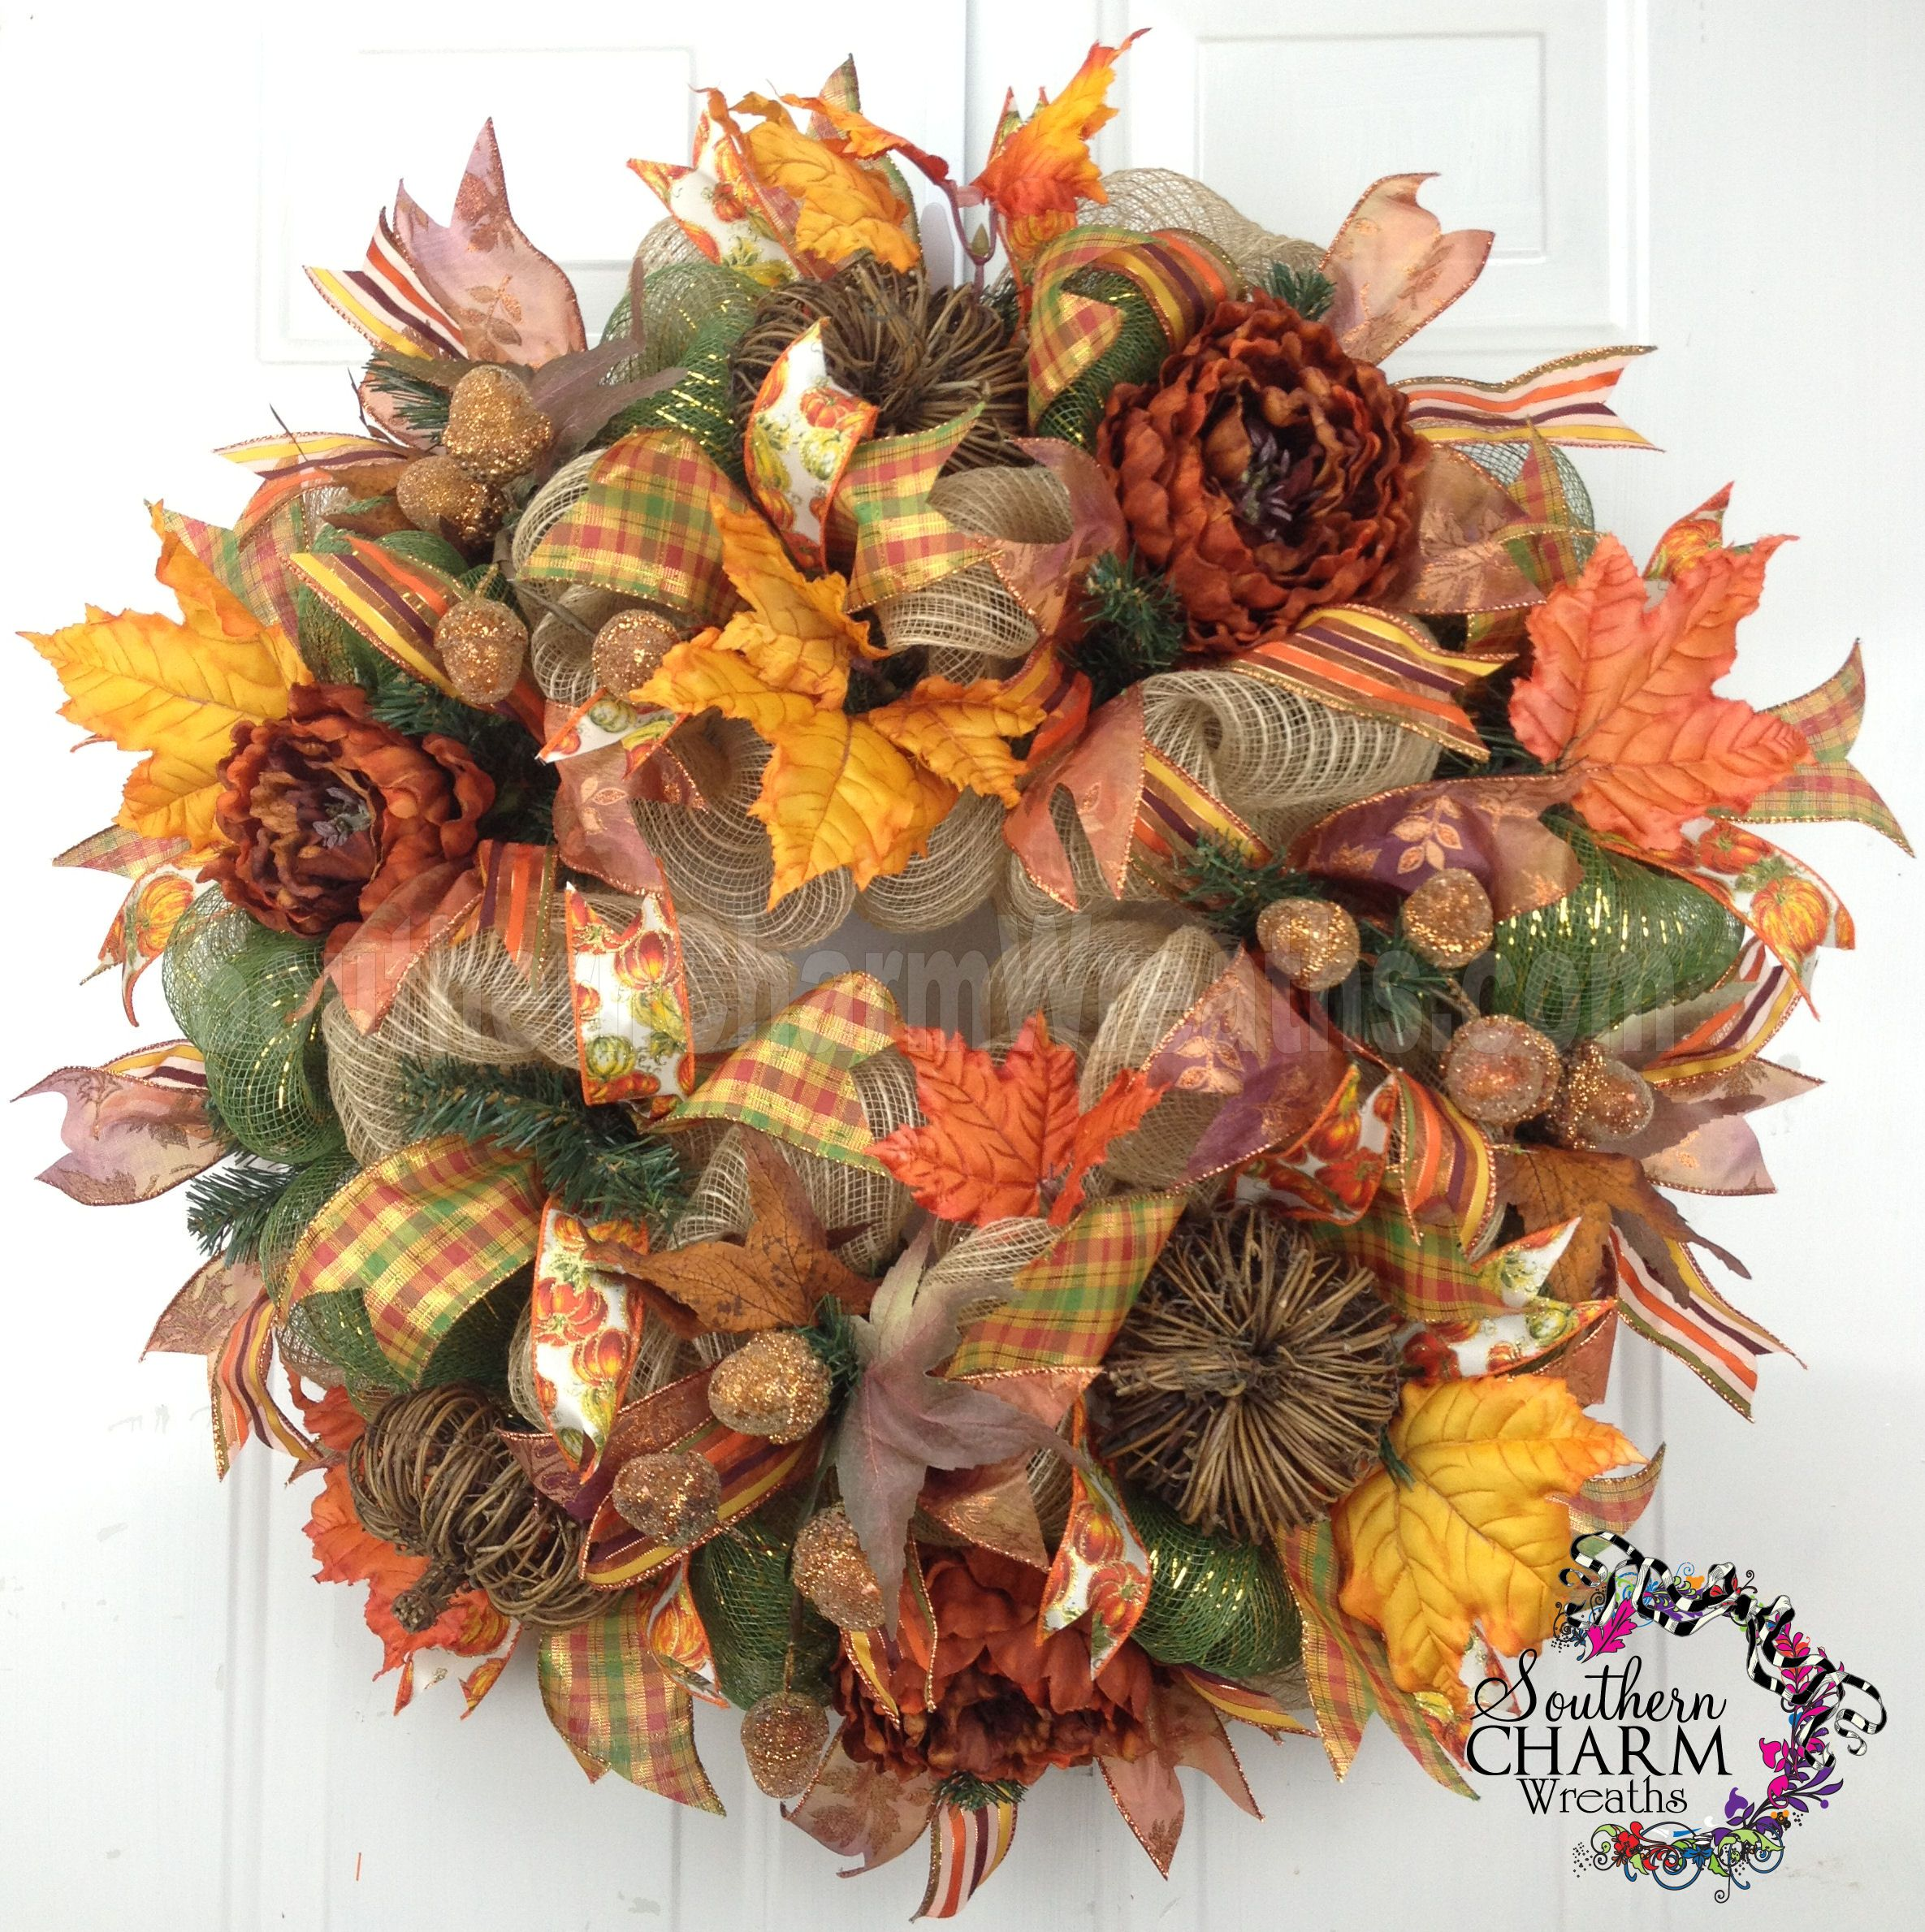 12 Easy Diy Deco Mesh Wreaths For Fall: Deco Mesh Fall Wreath For Door Or Wall